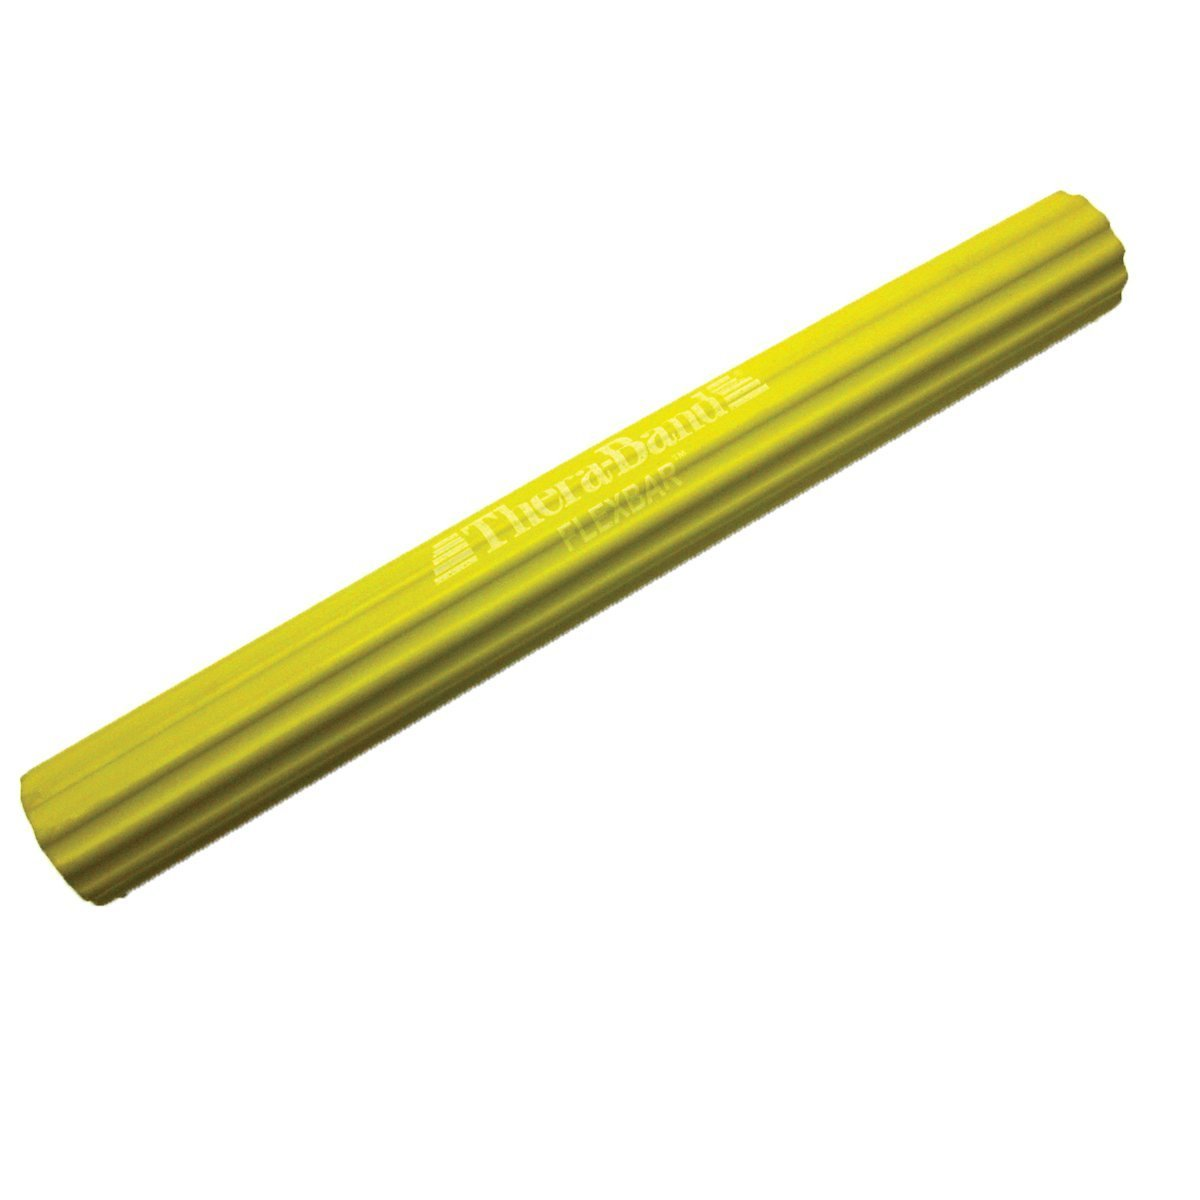 TheraBand FlexBar, Tennis Elbow Therapy Bar, Relieve Tendonitis Pain & Improve Grip Strength, Resistance Bar for Golfers Elbow & Tendinitis, Yellow, Extra Light, Beginner - 26107 by TheraBand (Image #1)